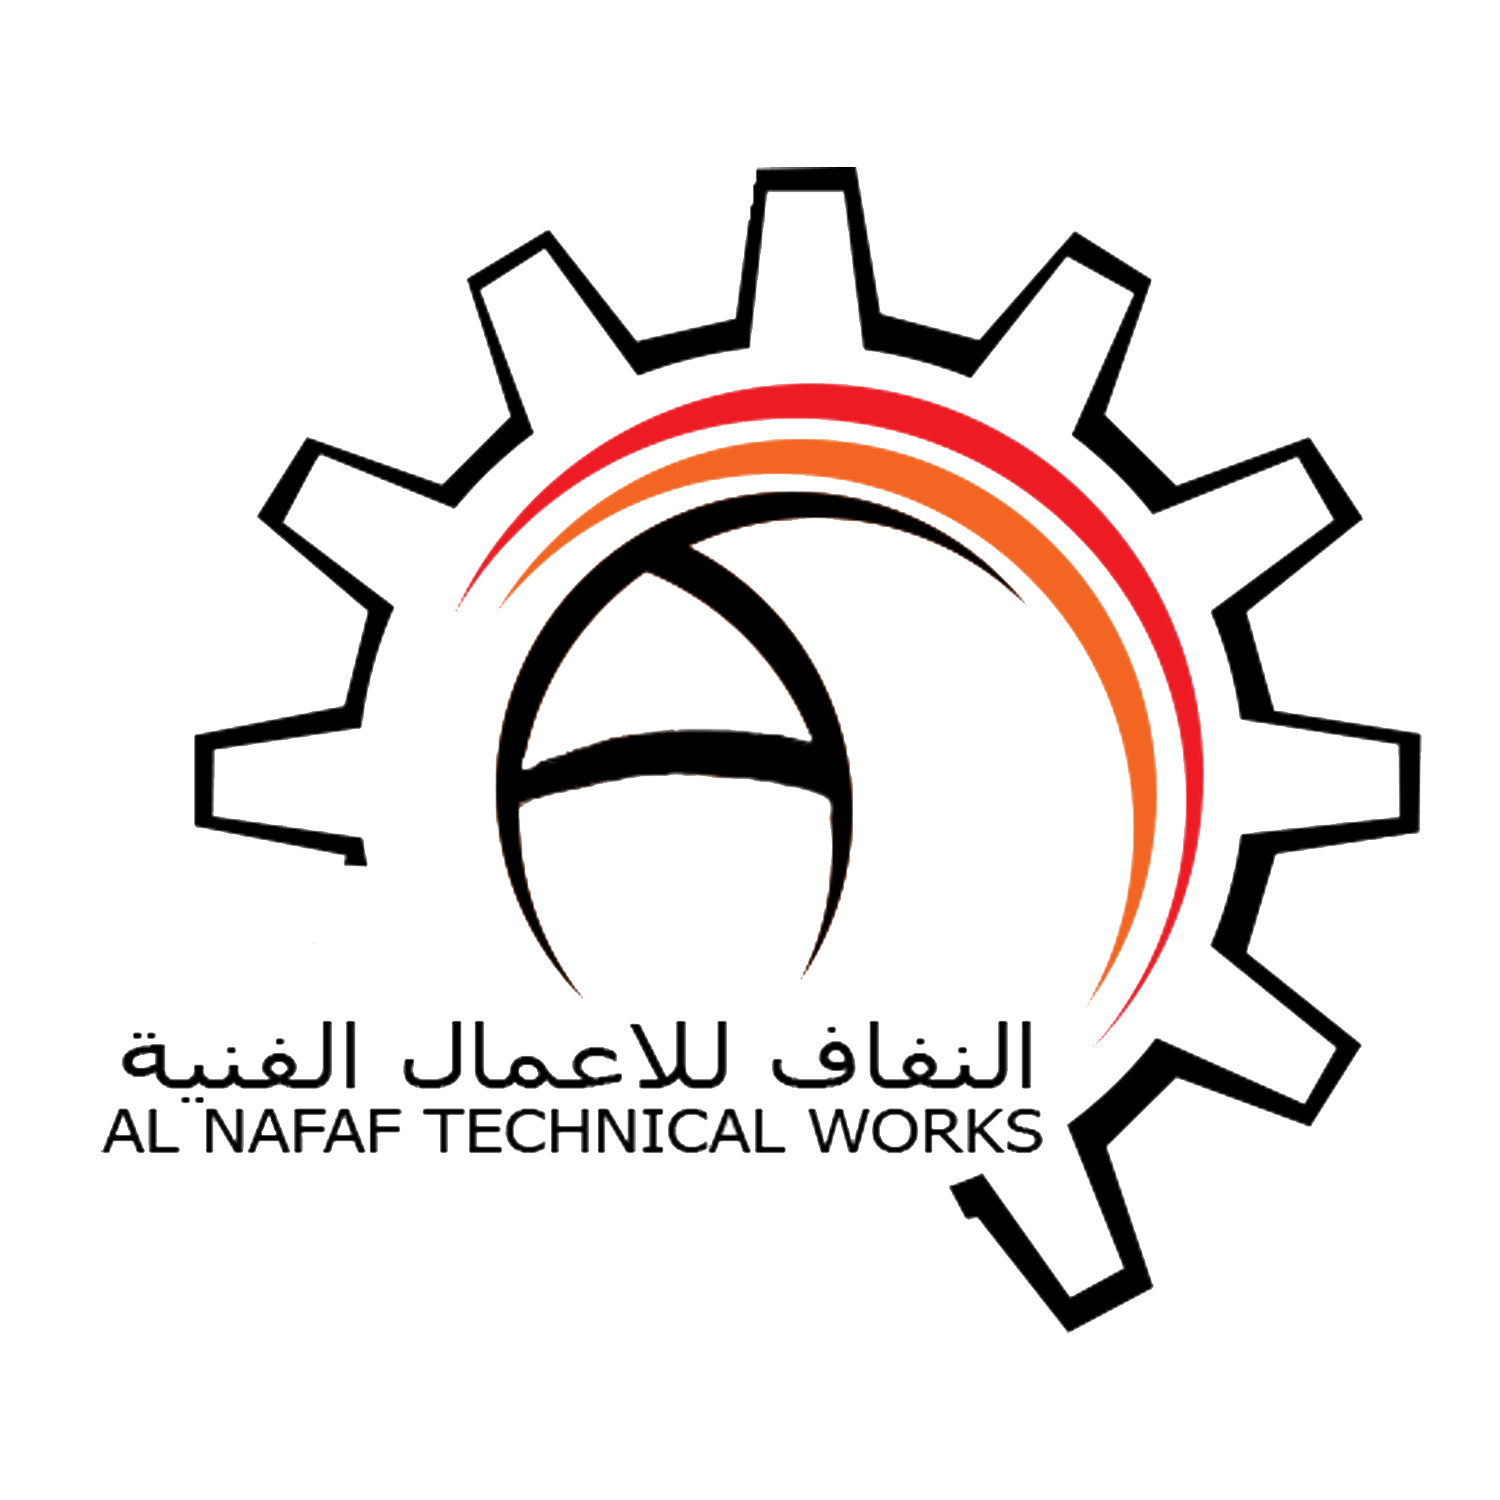 al nafaf techniacl services llc How General